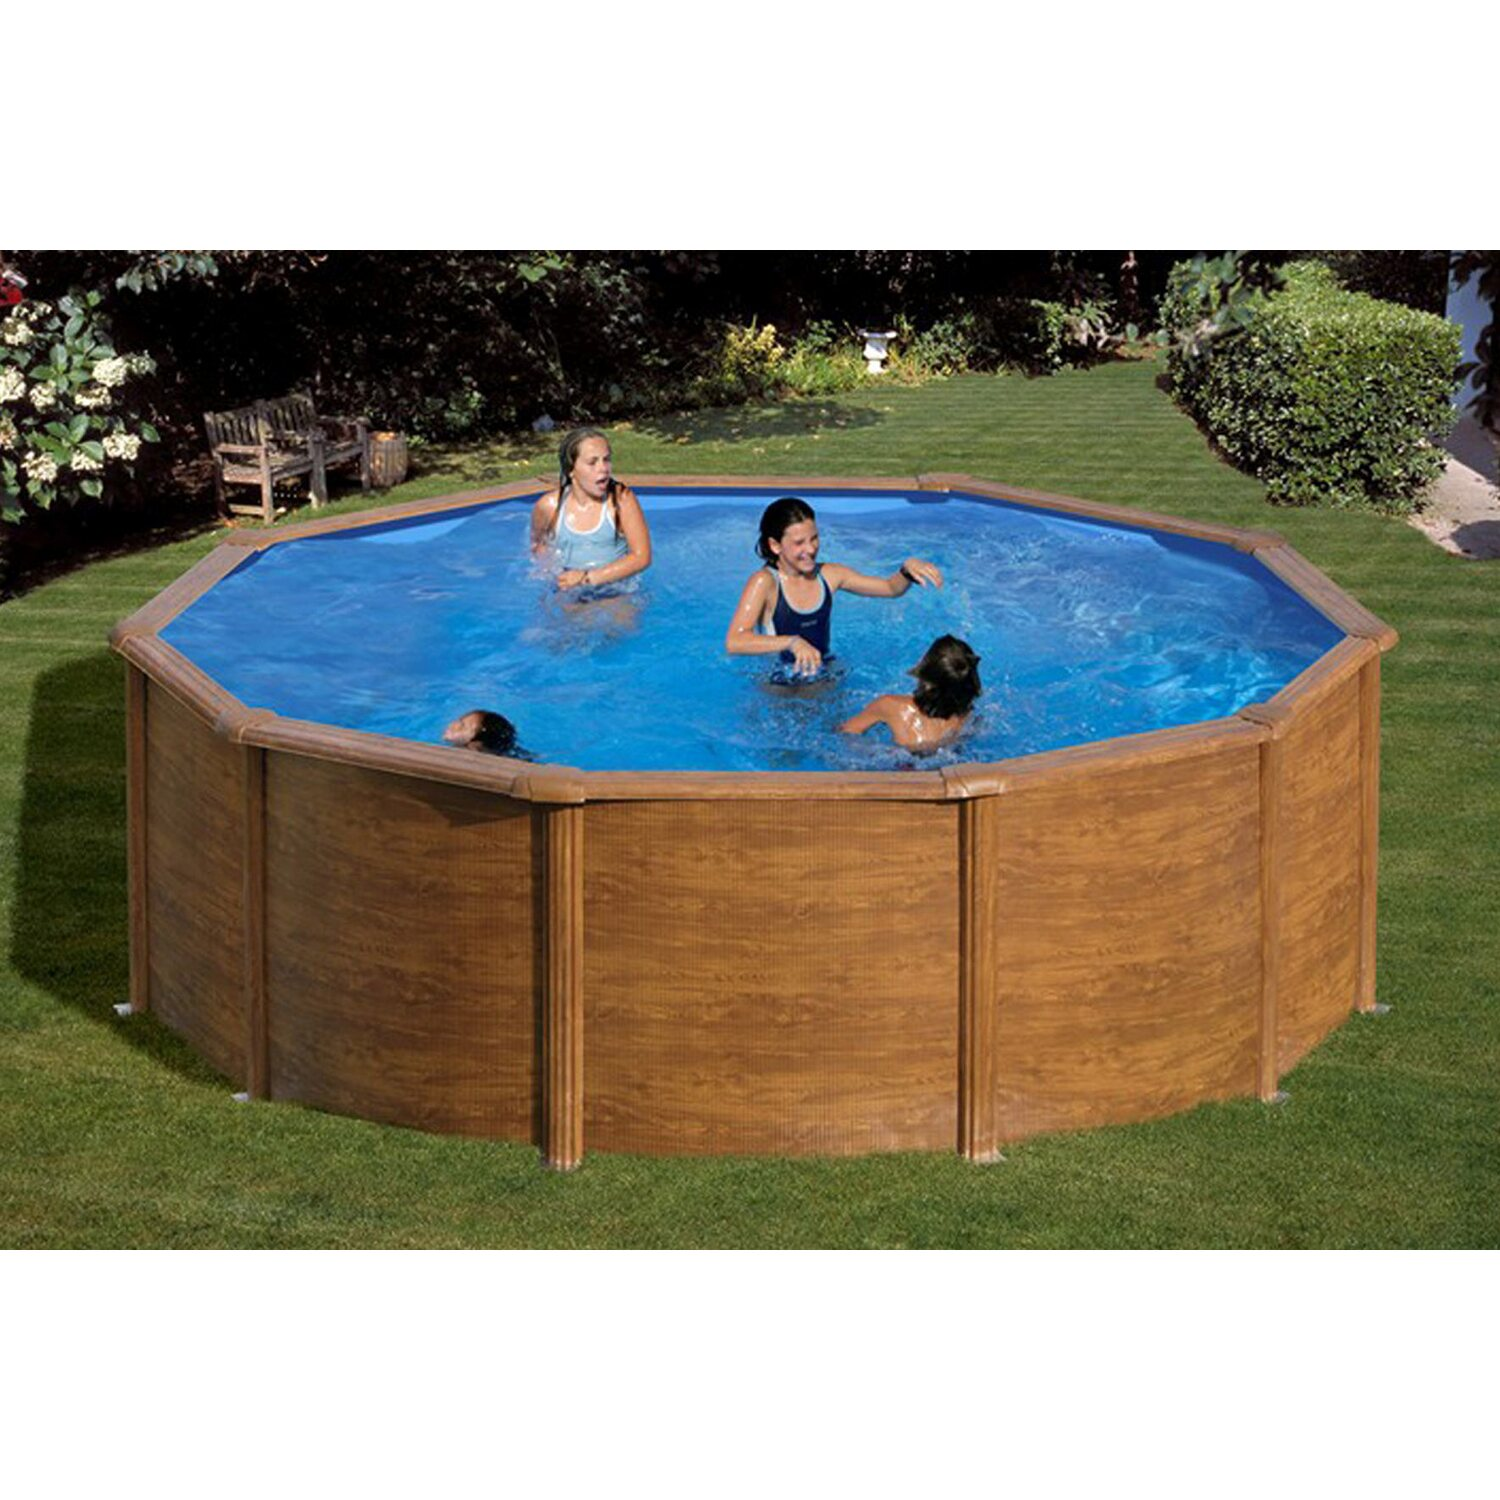 summer fun stahlwand pool set holz dekor rhodos. Black Bedroom Furniture Sets. Home Design Ideas